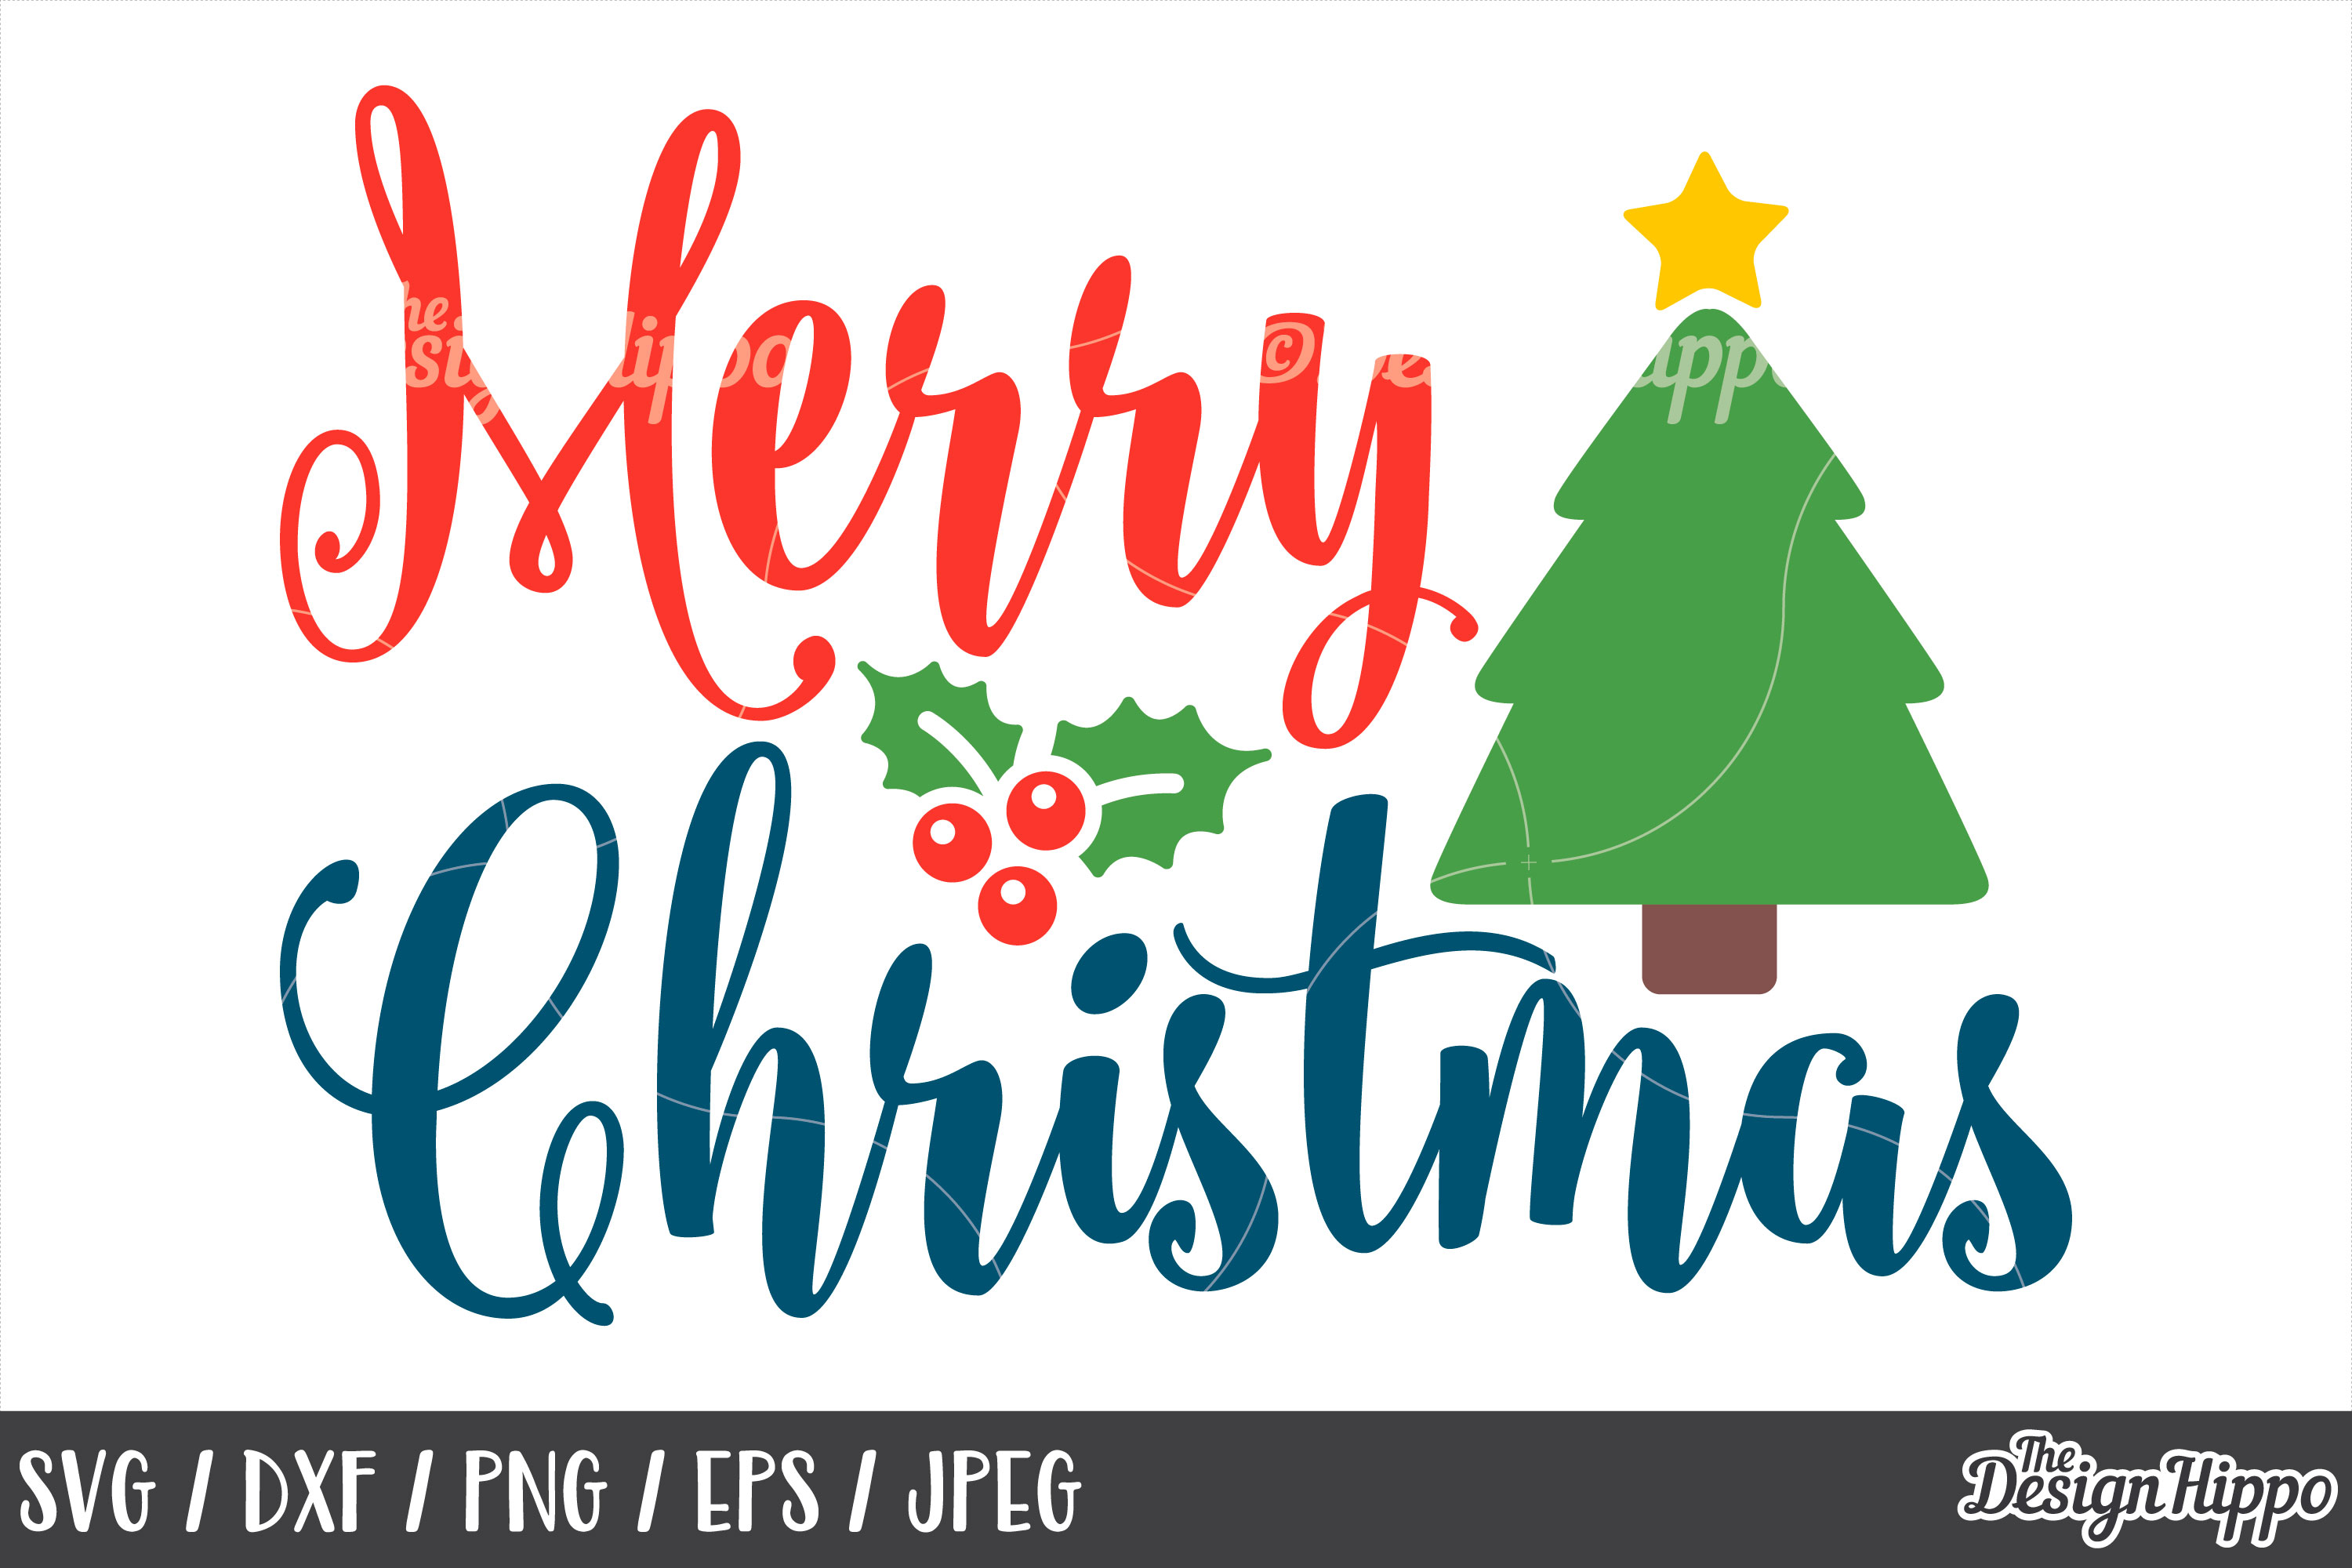 Merry Christmas SVG Bundle, Christmas SVG, PNG, DXF Cut File example image 9